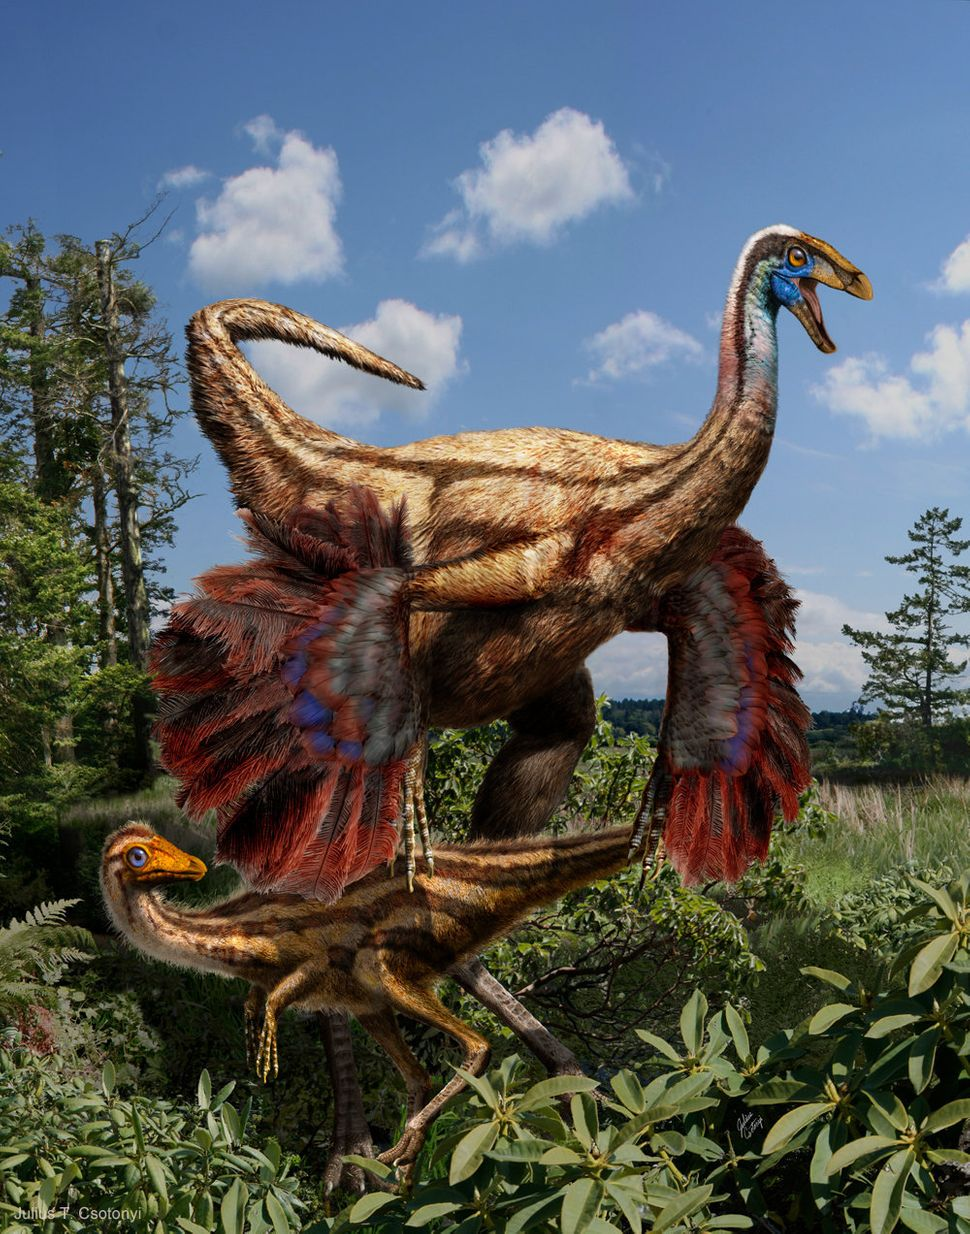 Ornithomimus is the first known feathered non-avian dinosaur from the western hemisphere.